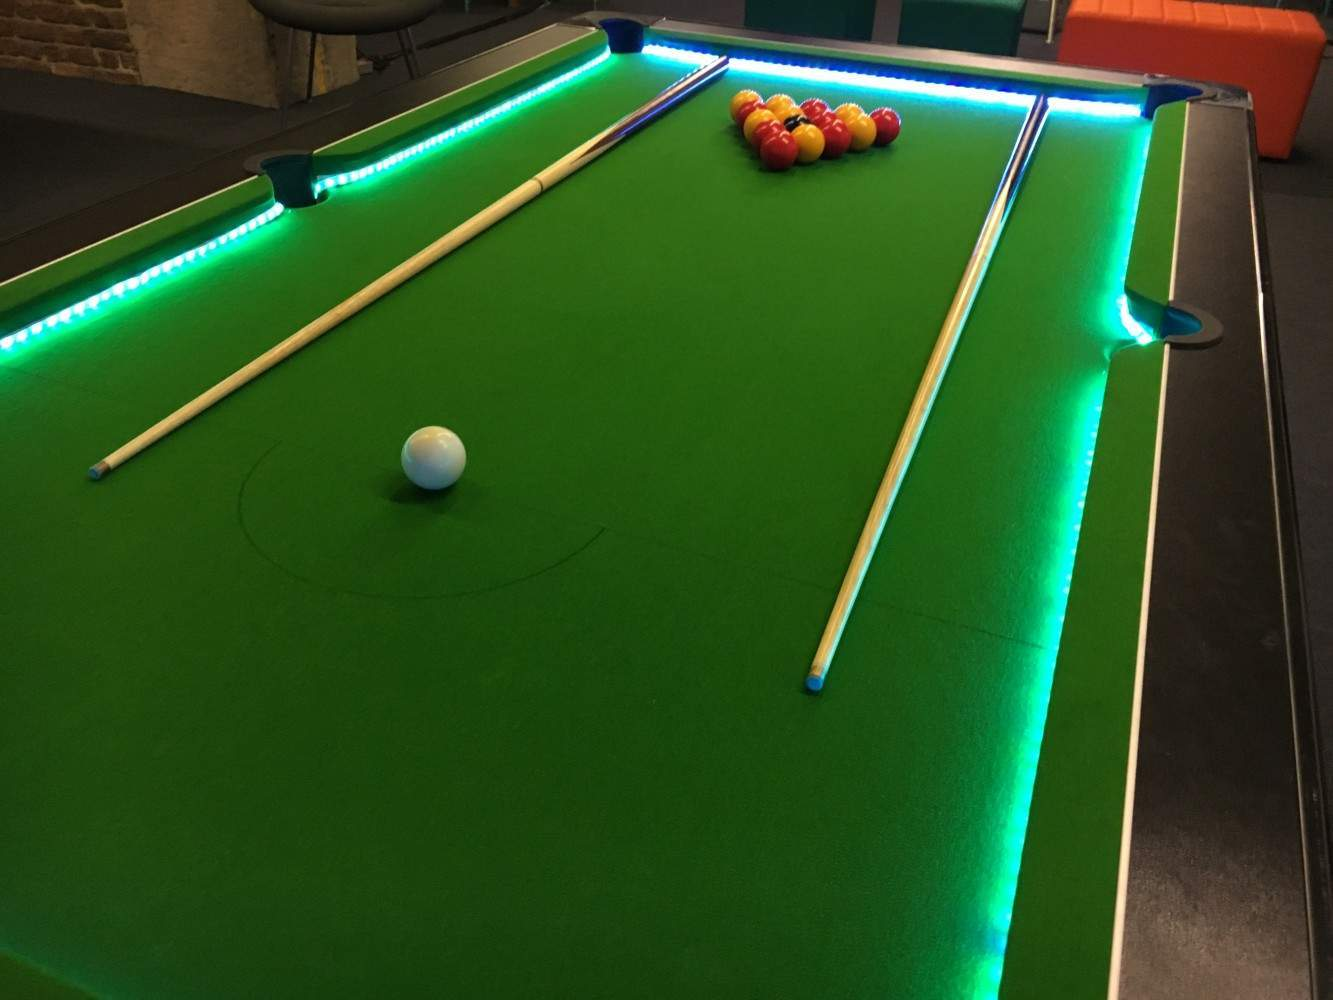 Led american pool table hire for events london kent - Pool table images ...